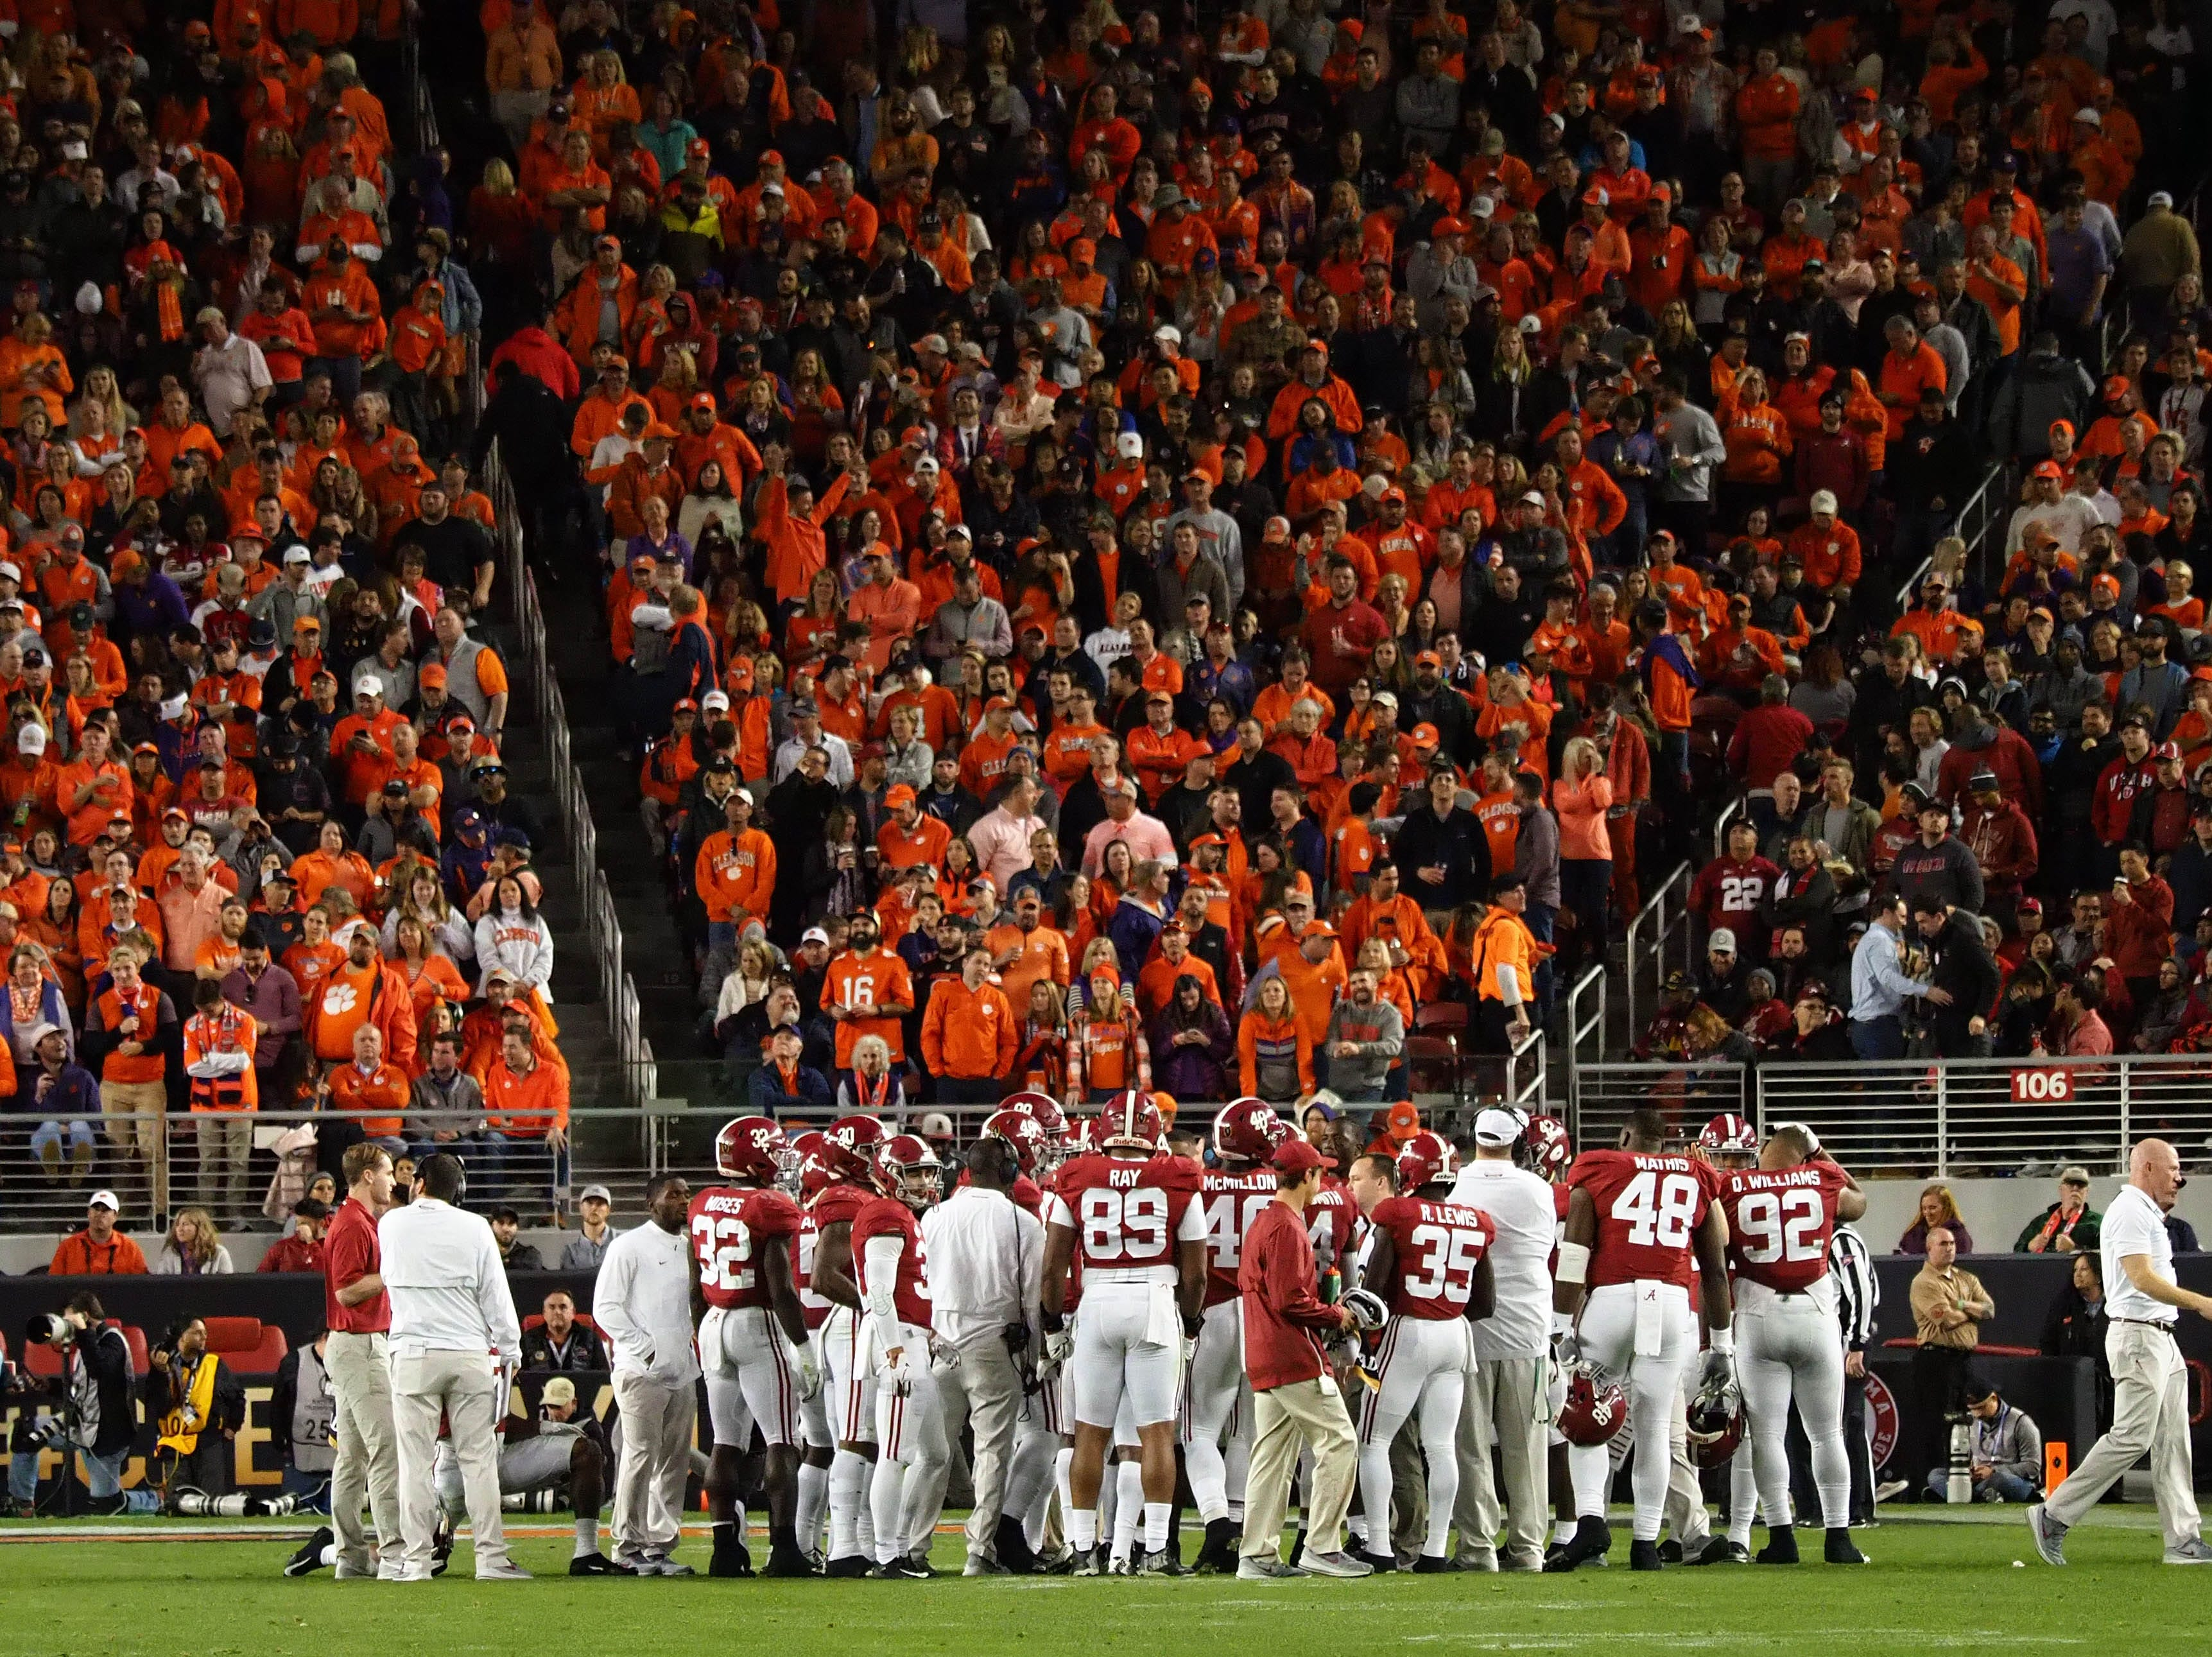 Clemson fans look on during an Alabama huddle.